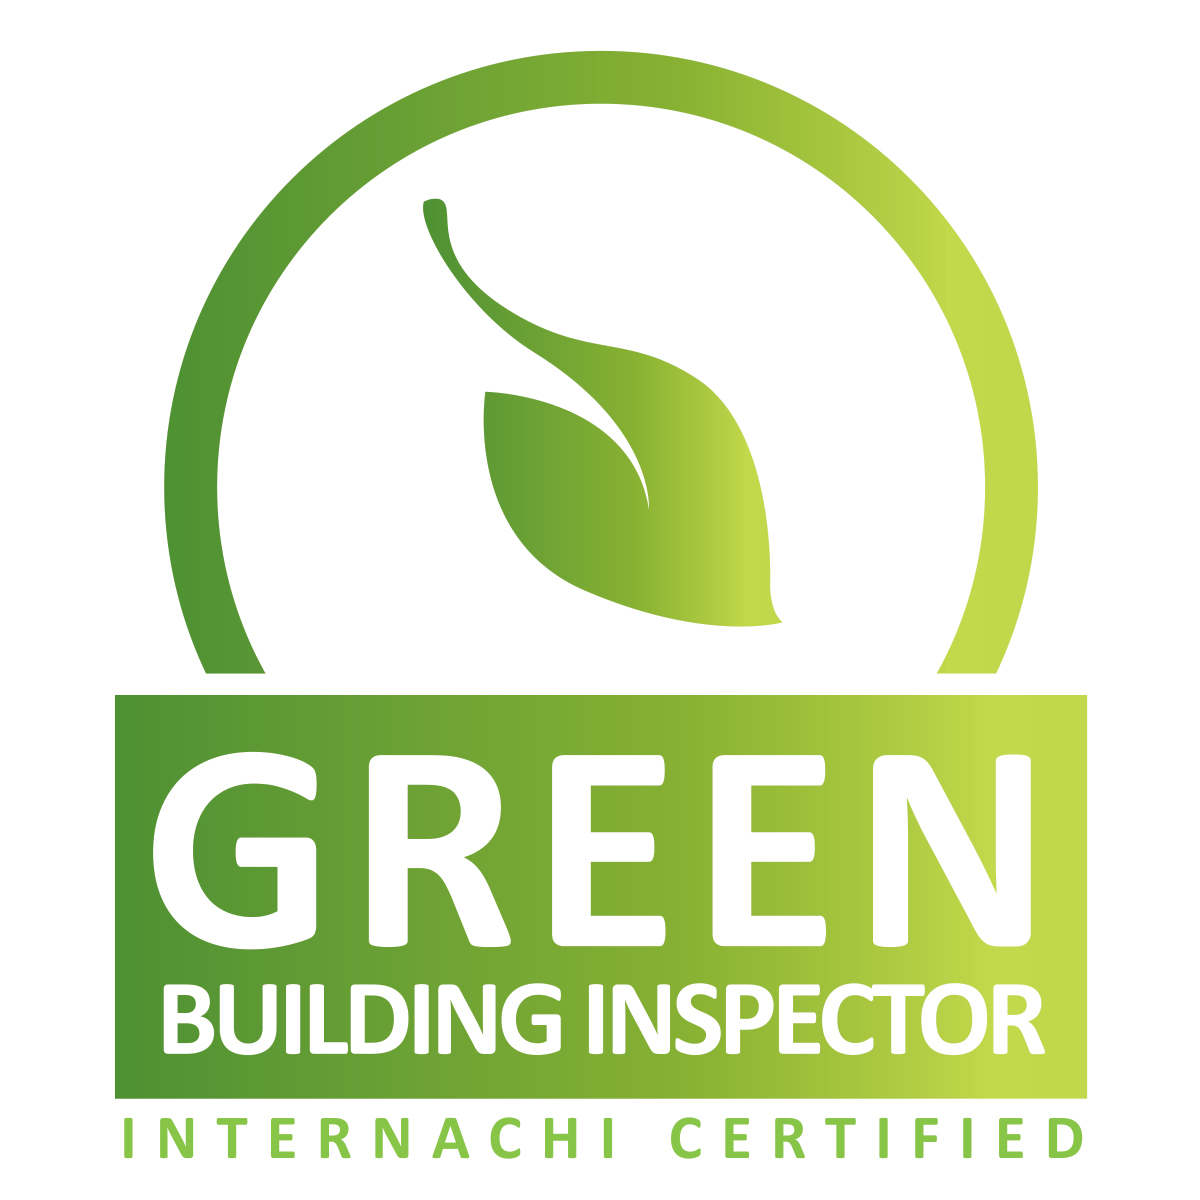 green building inspection course internachi